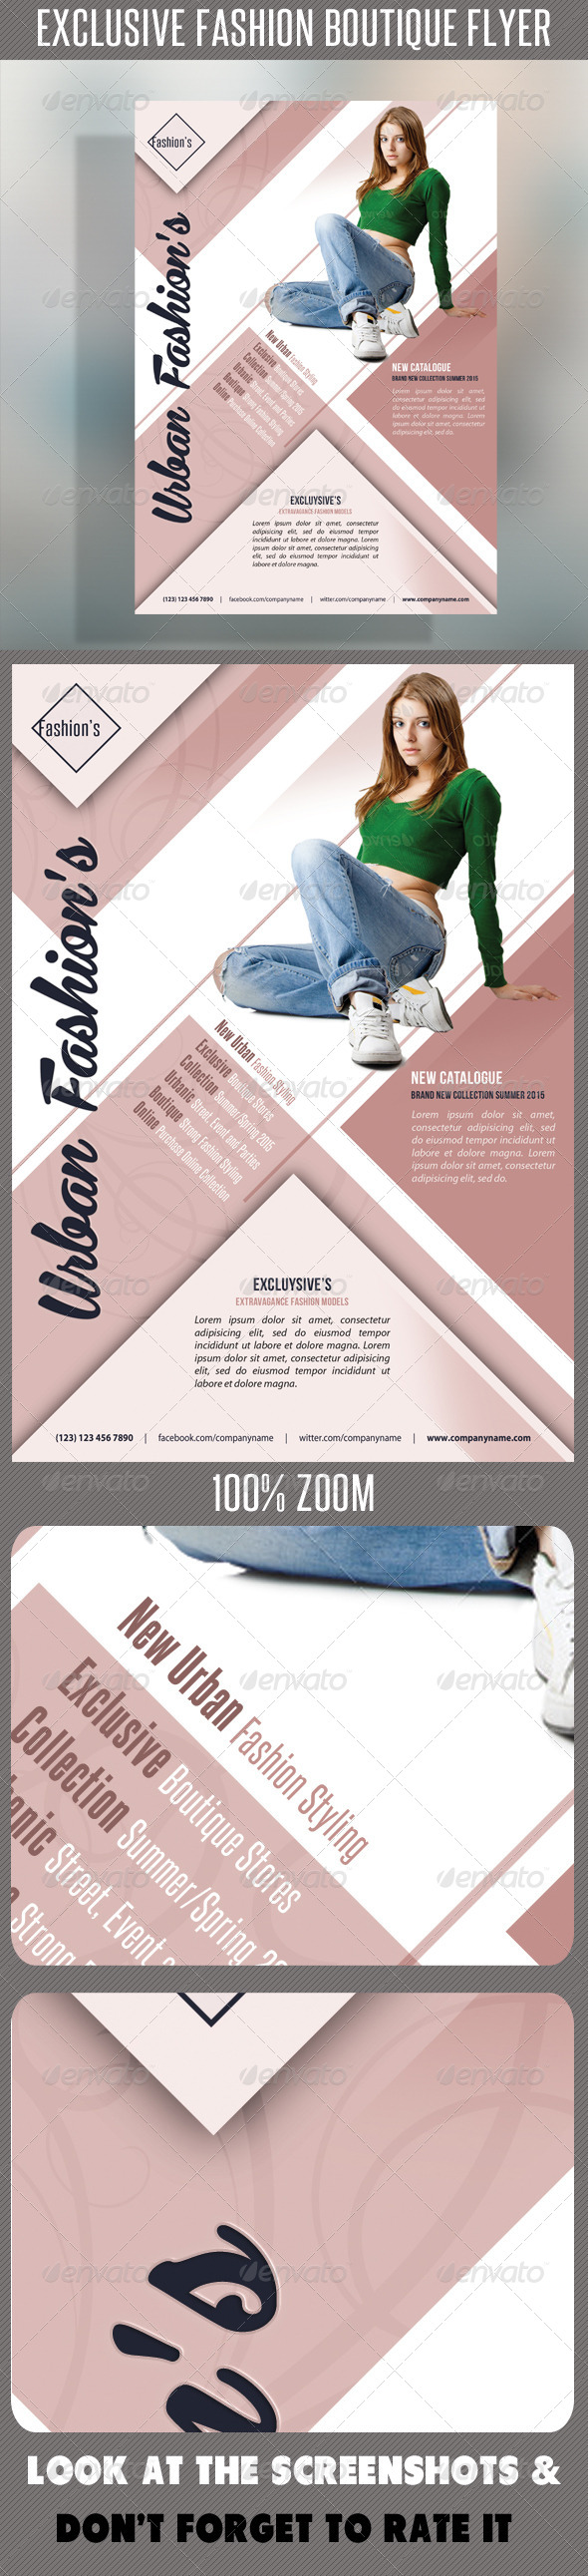 Fashion Product Flyer 57 - Flyers Print Templates